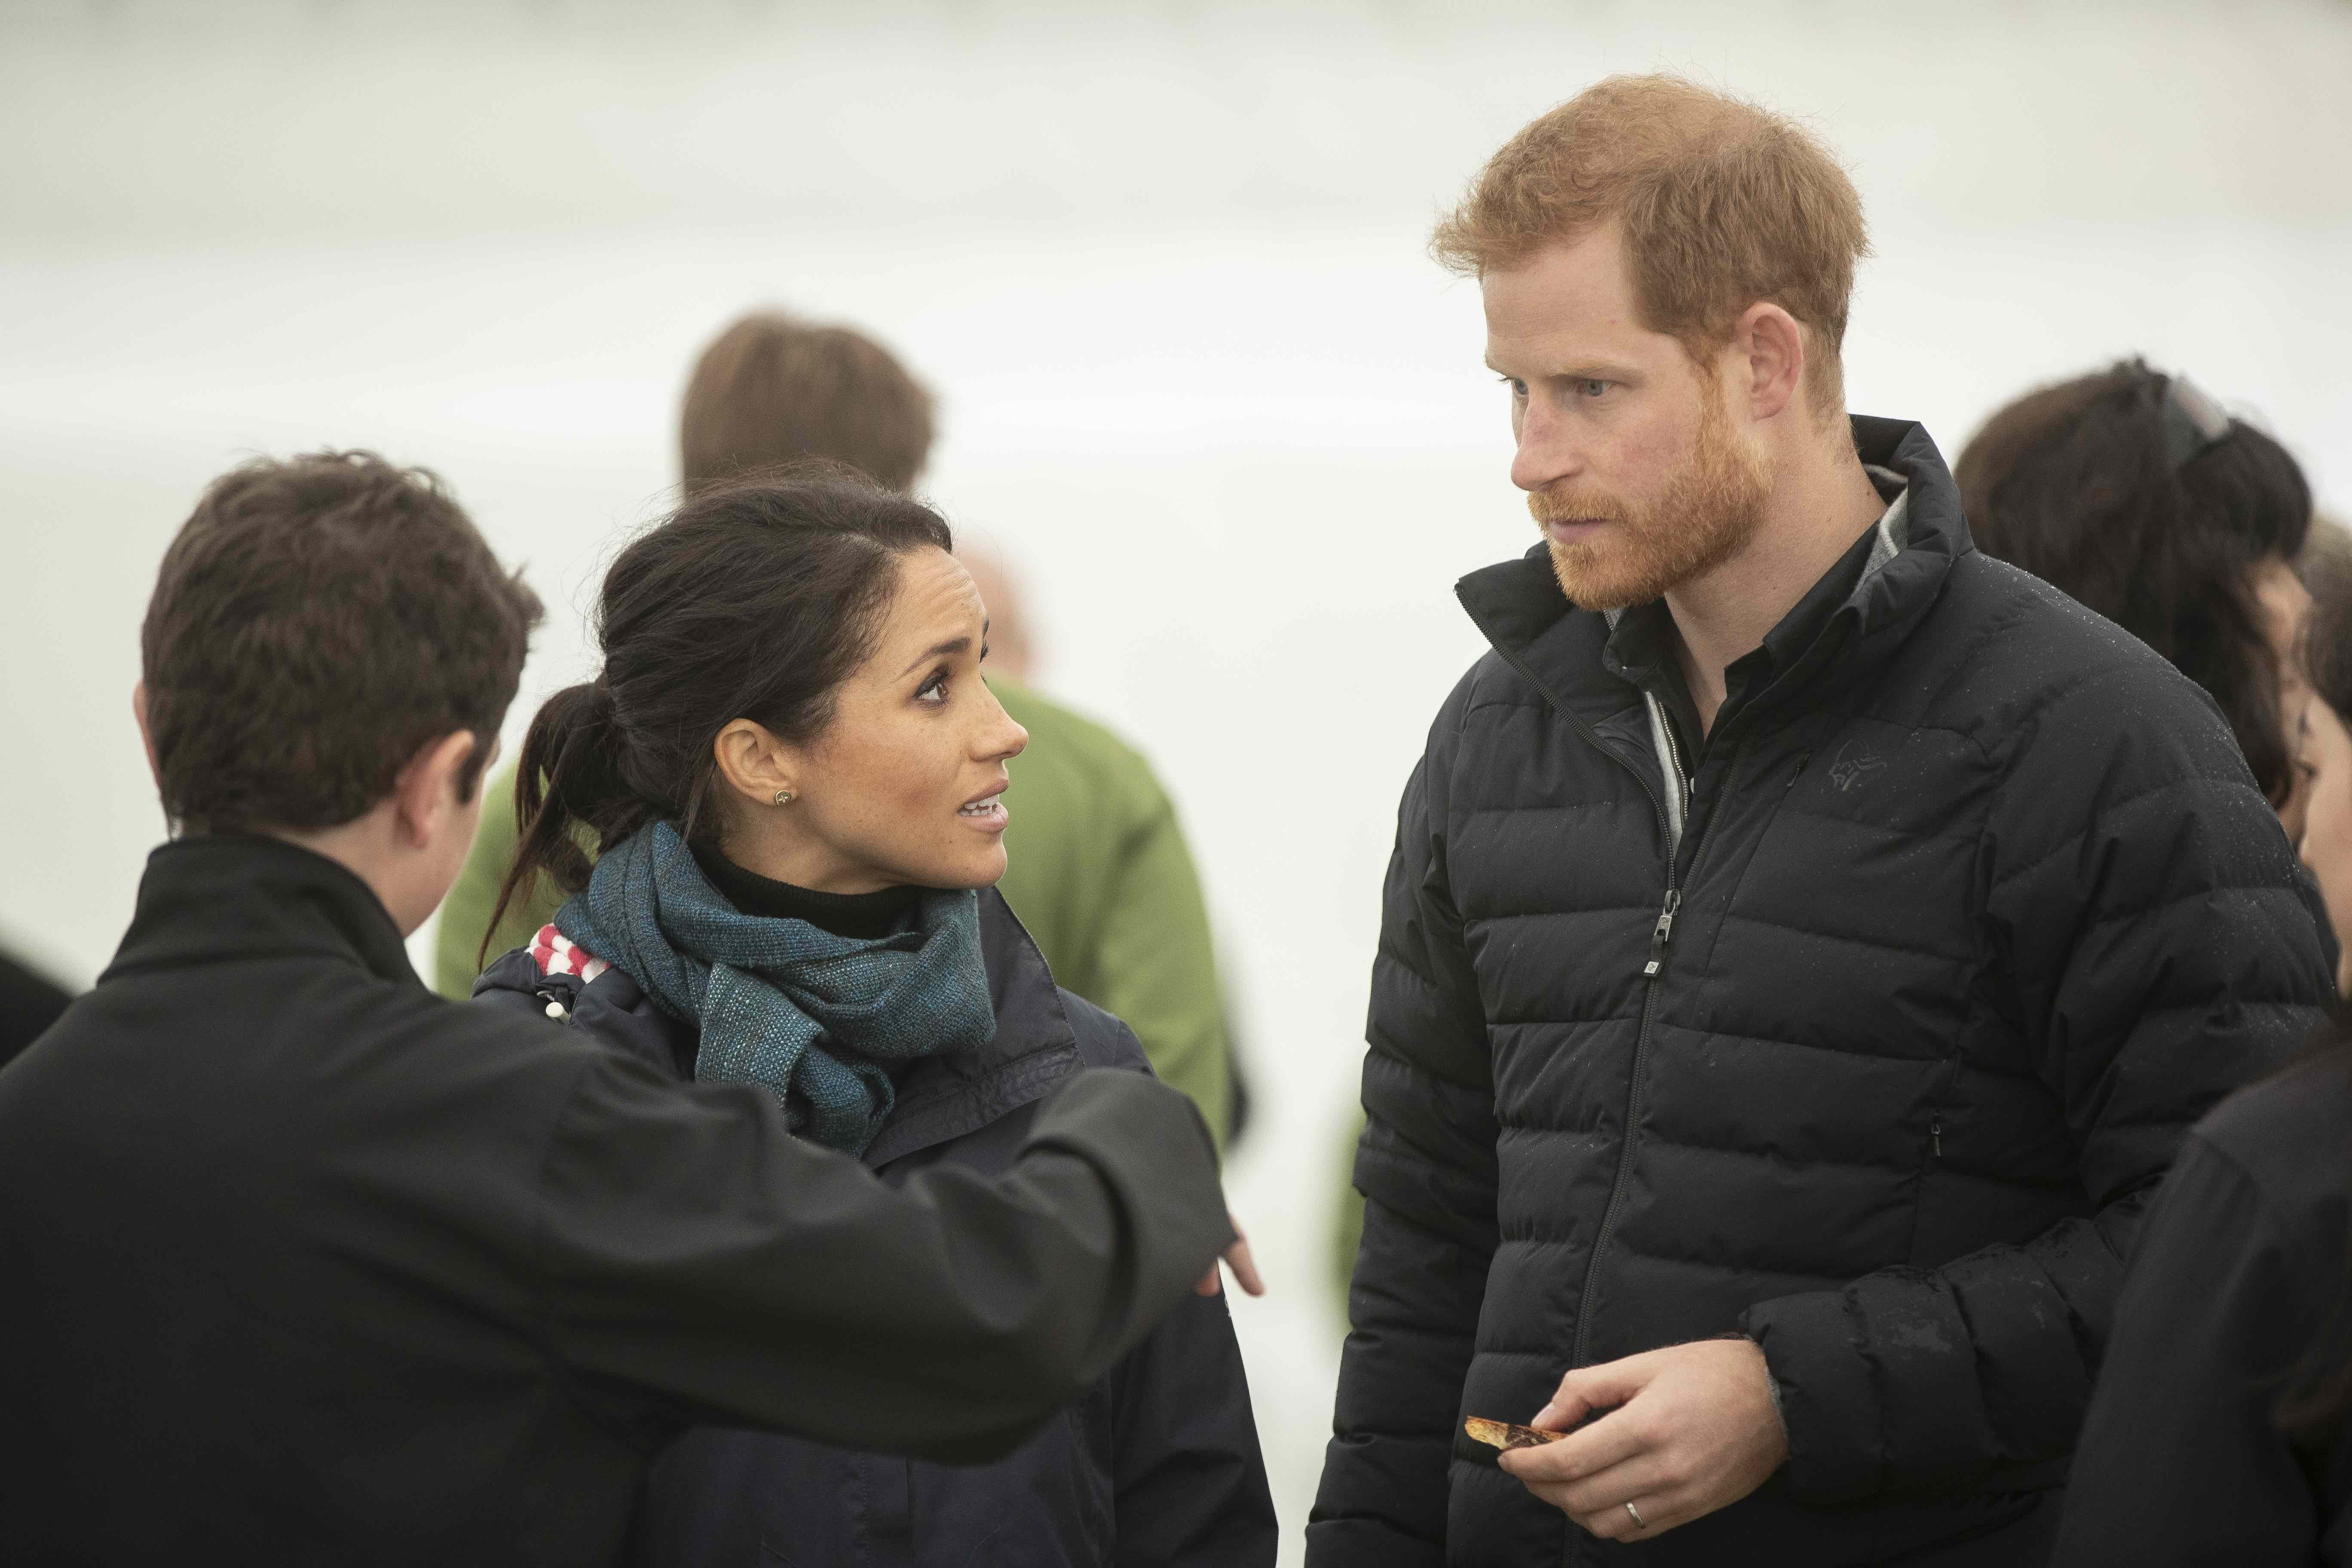 Prince Harry and Meghan Markle drama: ex-bodyguard speaks out